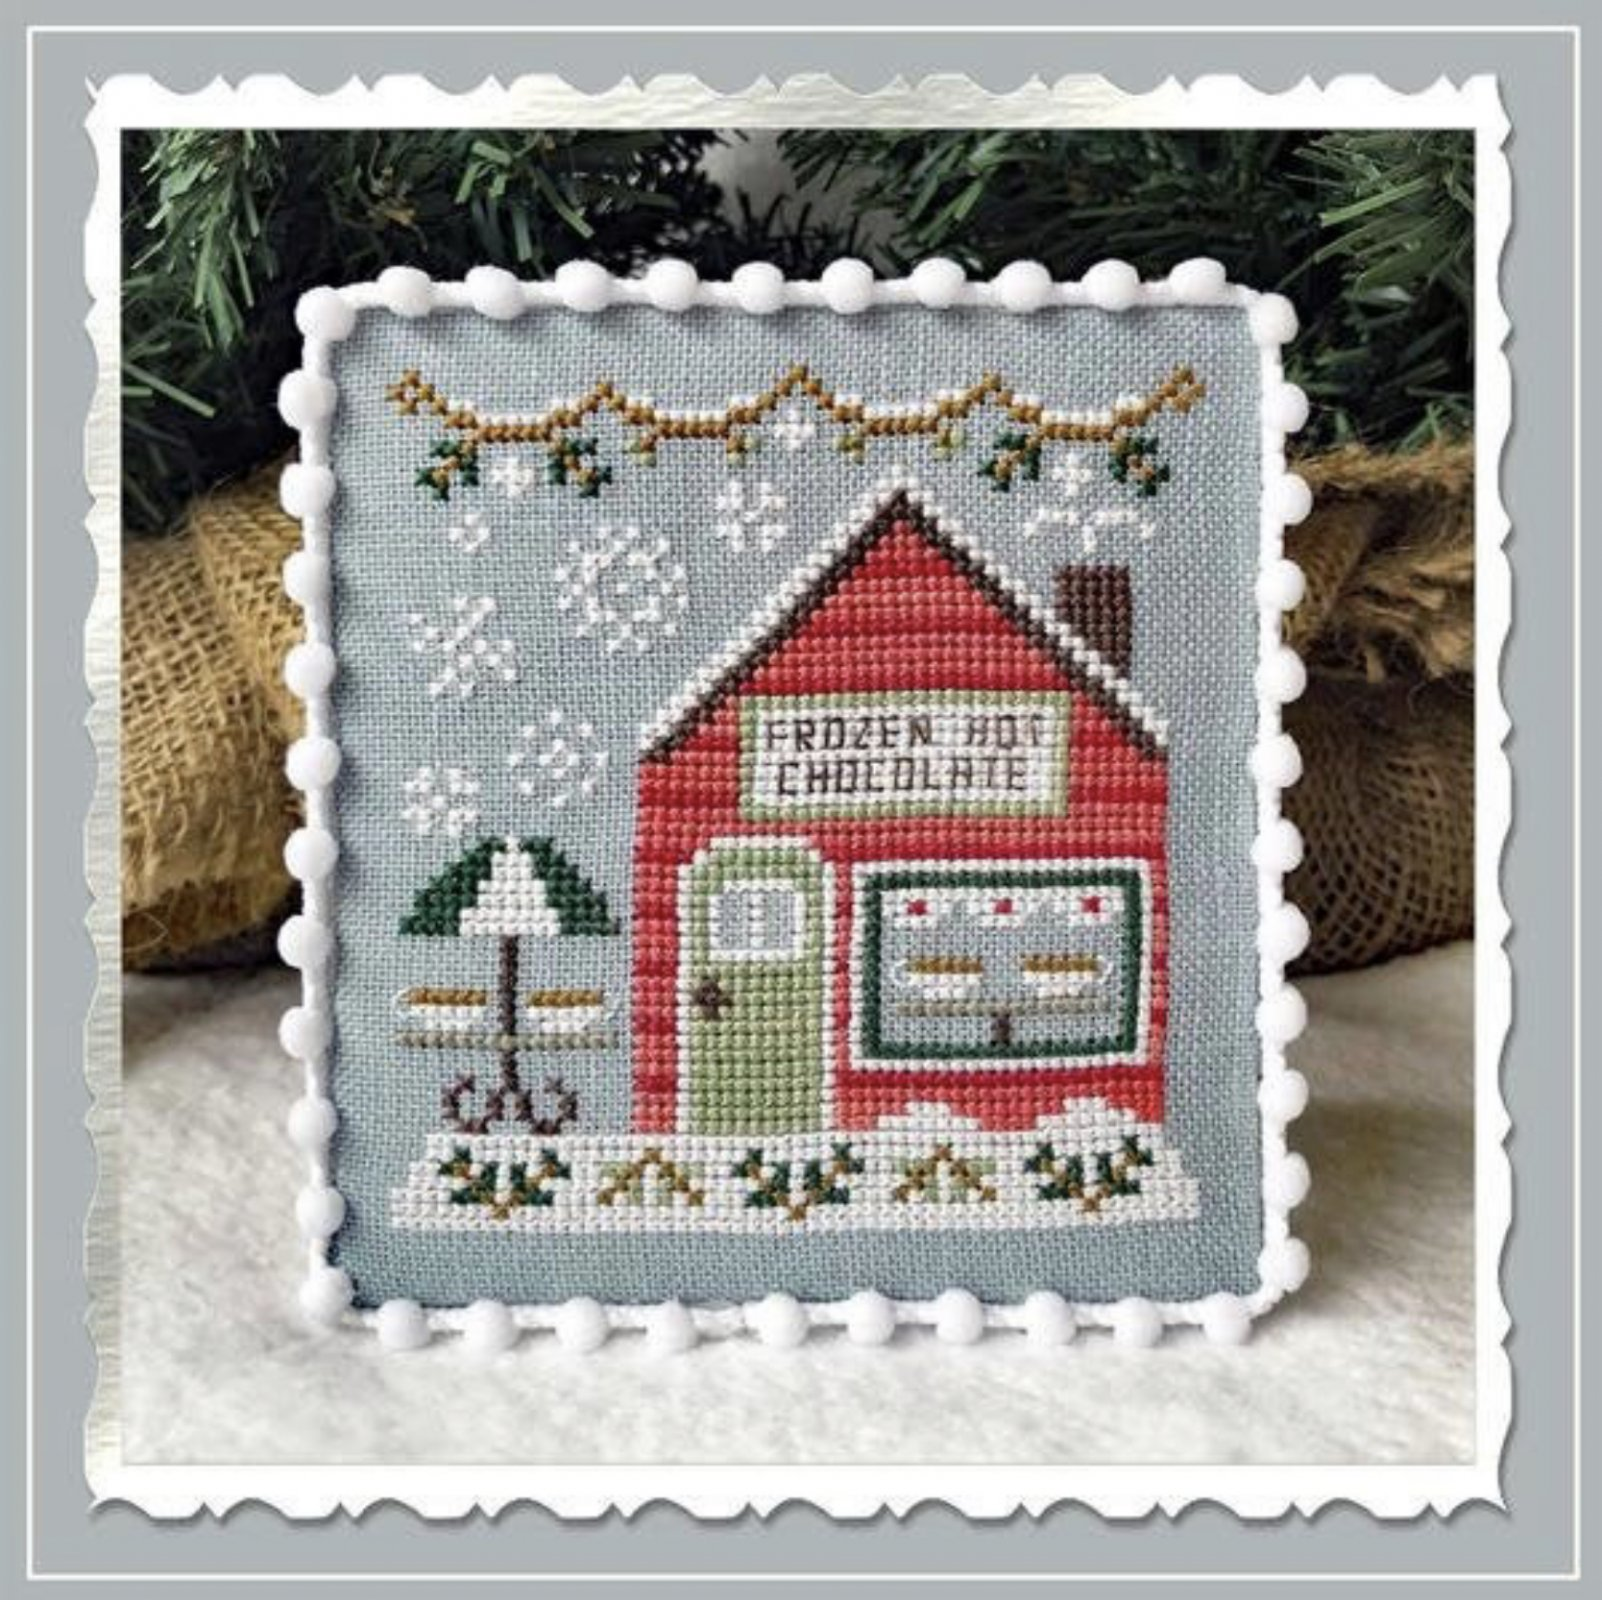 Country Cottage Needleworks Snow Village: Frozen Hot Chocolate Shop 5 of 11